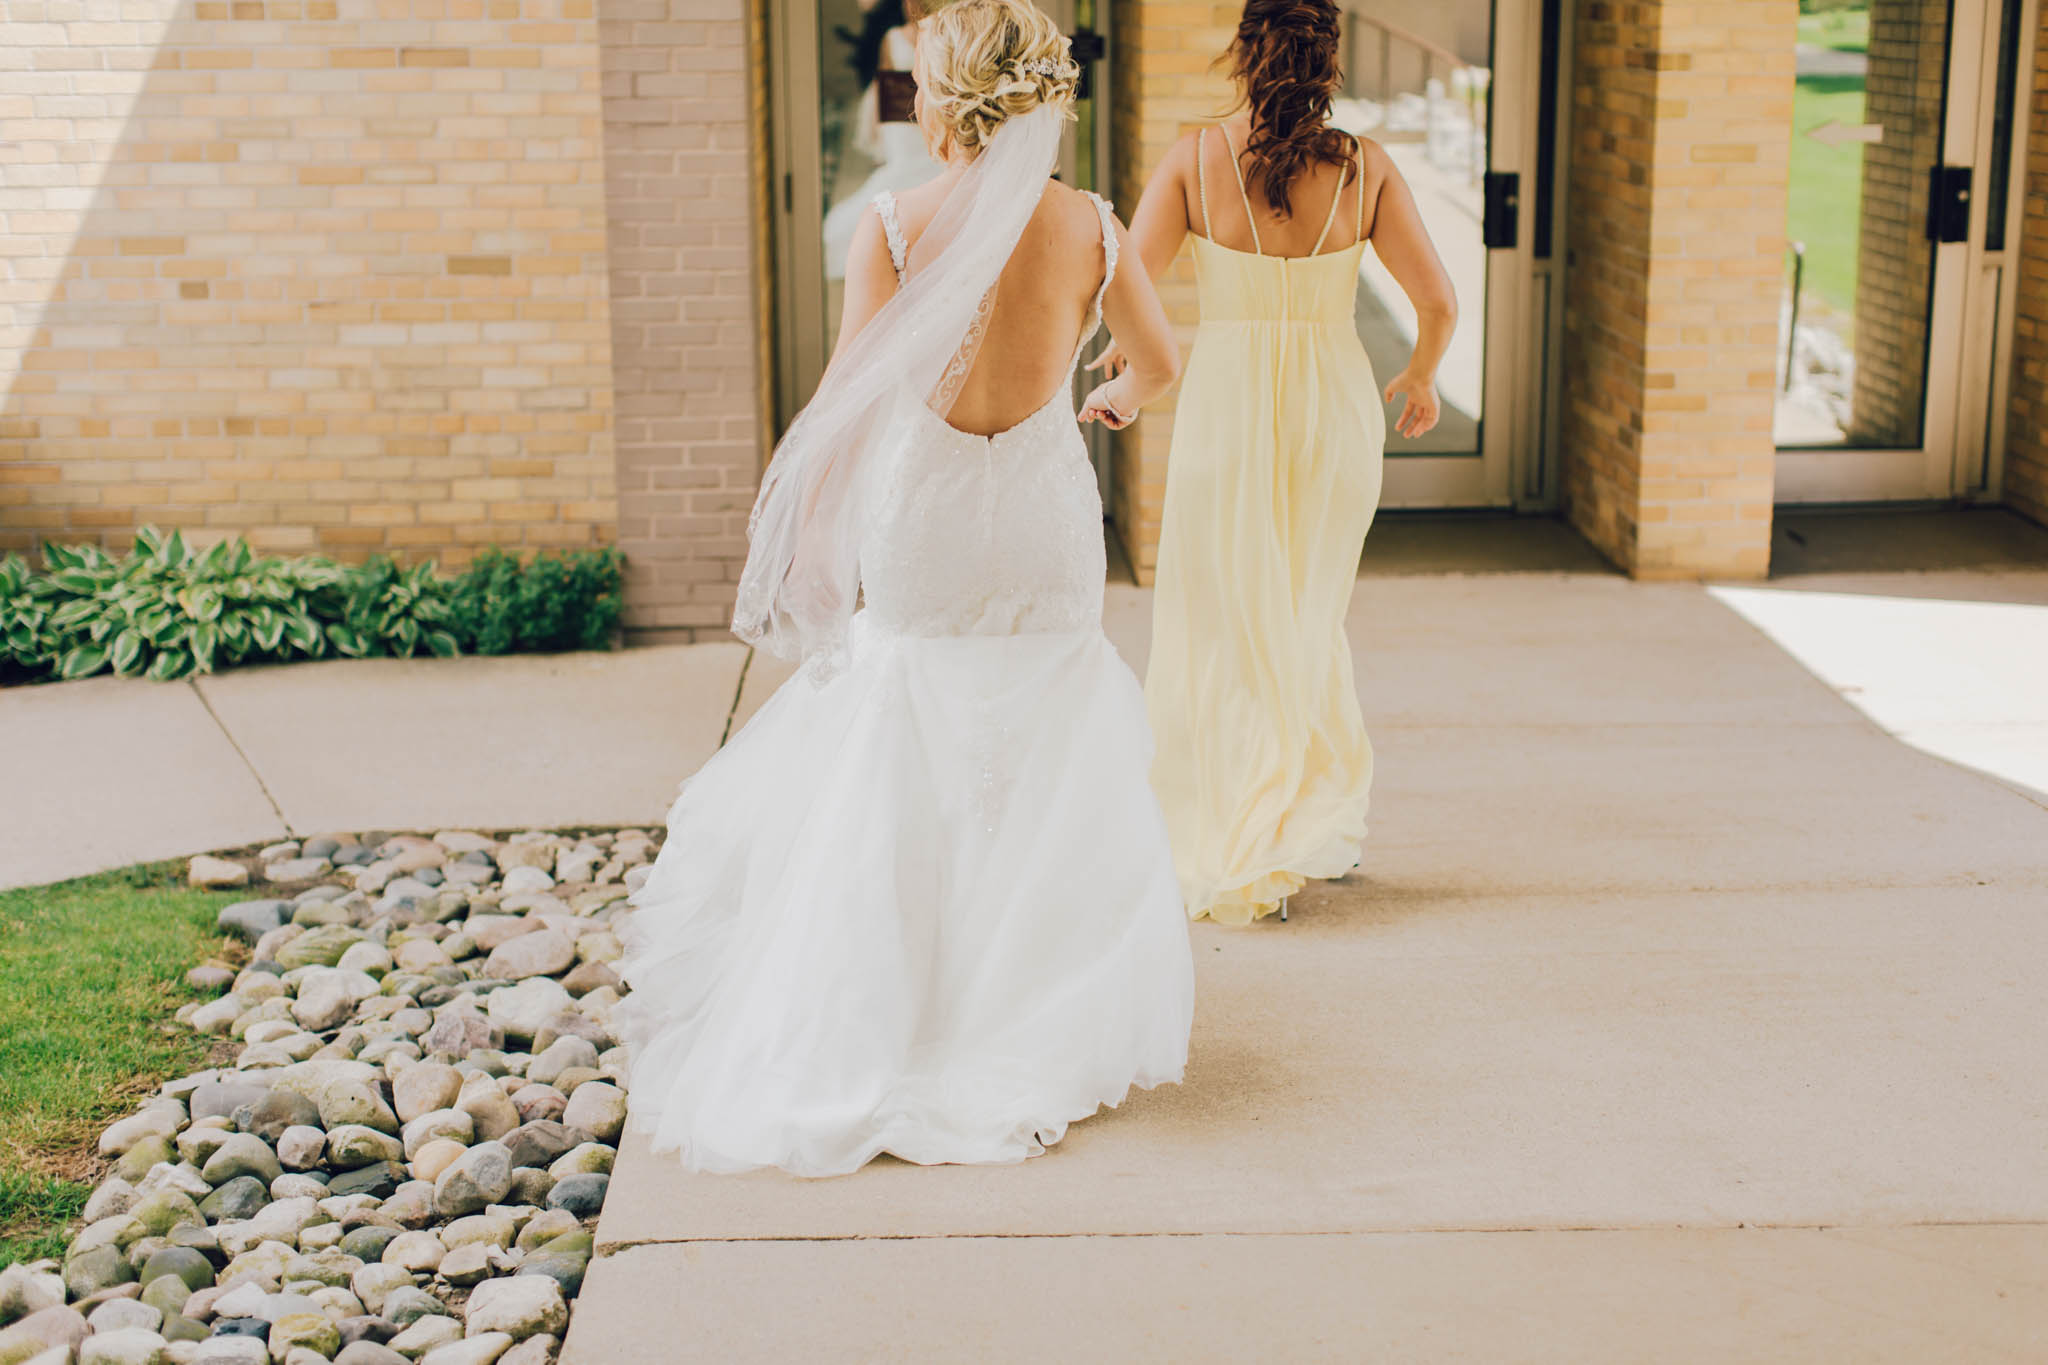 Jillian VanZytveld Photography - Grand Rapids Lifestyle Wedding Photography - 041.jpg